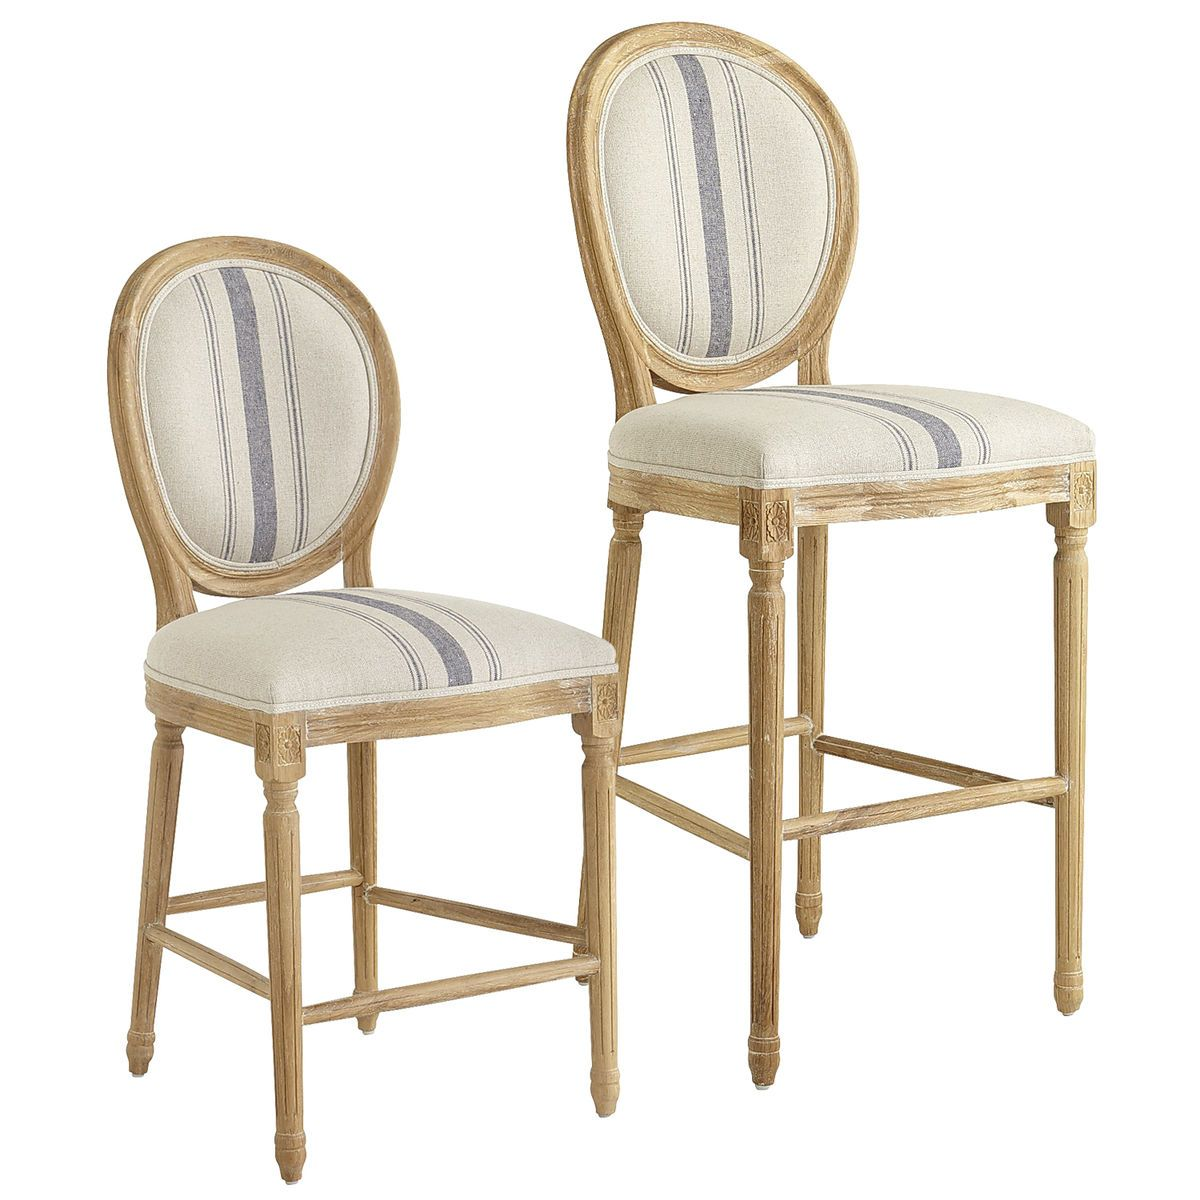 Incredible Eliane Bar Counter Stools Blue Stripe Pier 1 Imports Gmtry Best Dining Table And Chair Ideas Images Gmtryco